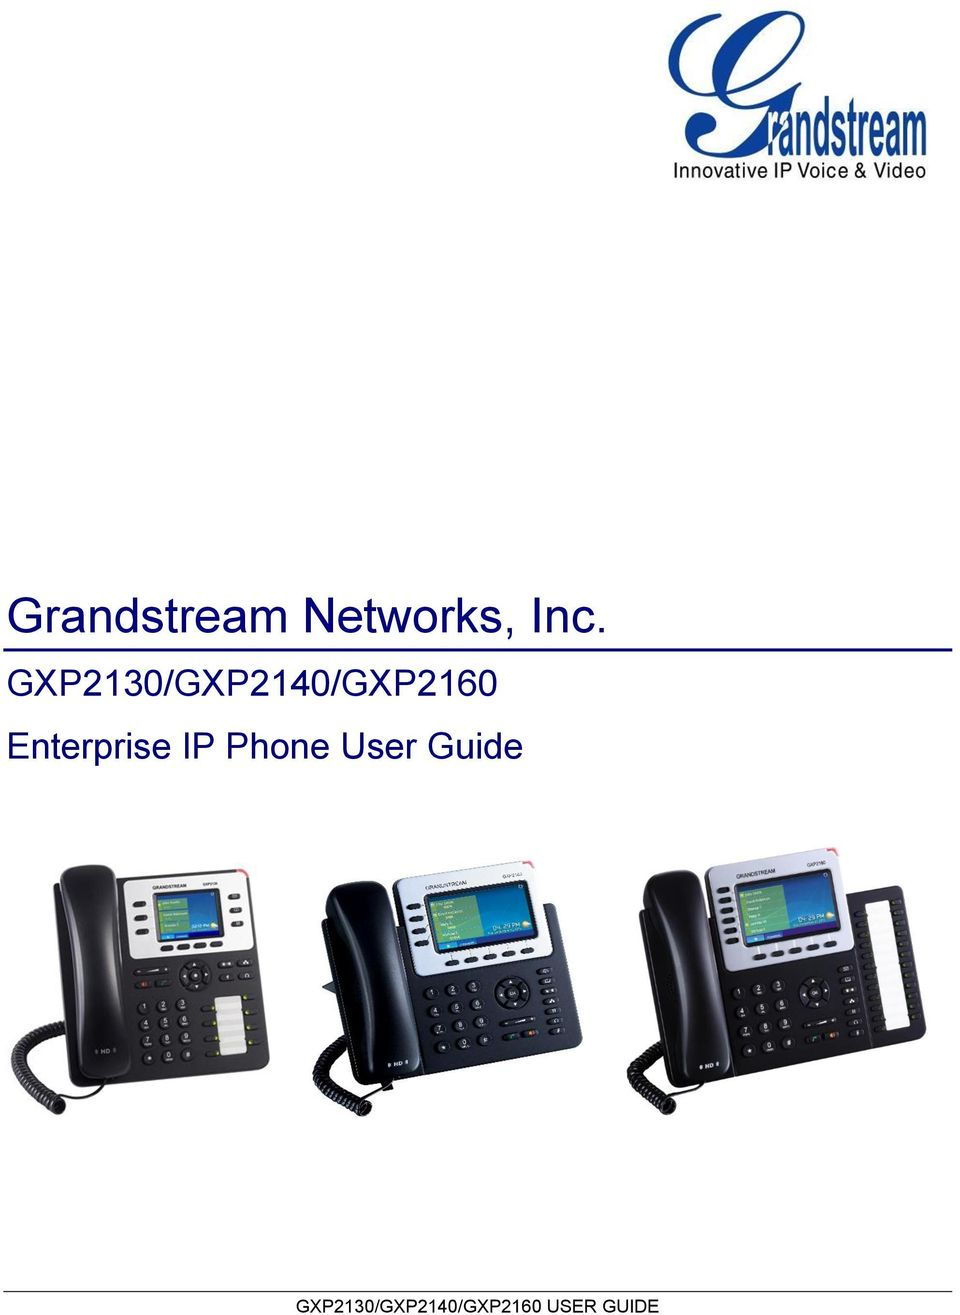 Enterprise IP Phone User